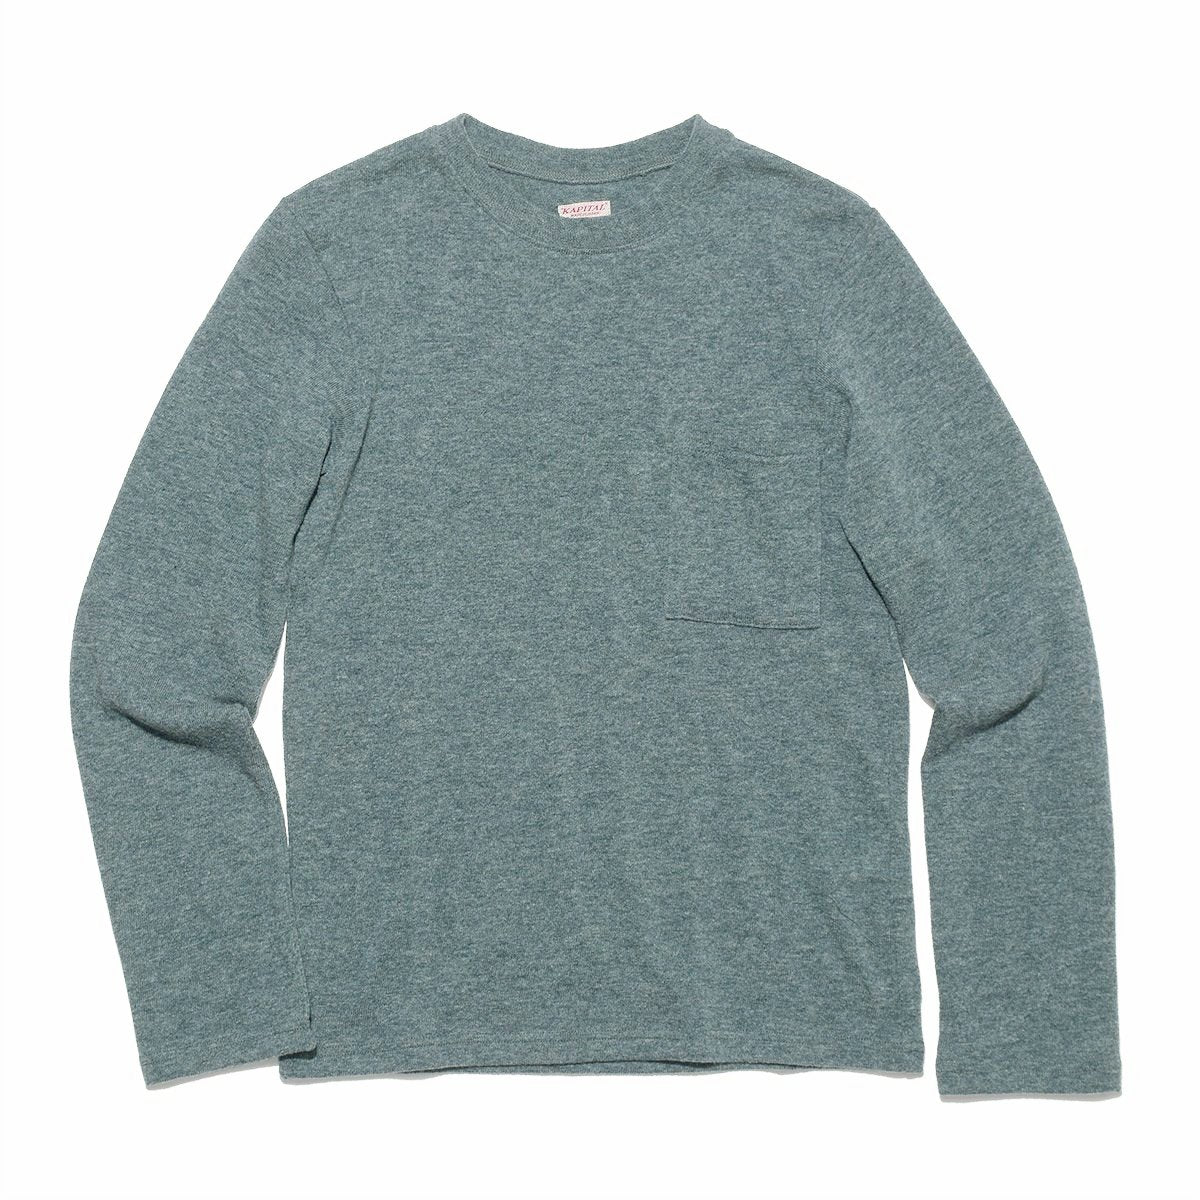 Lambs Wool Jersey Crew Long Sleeve T - Turquoise - BLUE IN GREEN SOHO acadfb9bd